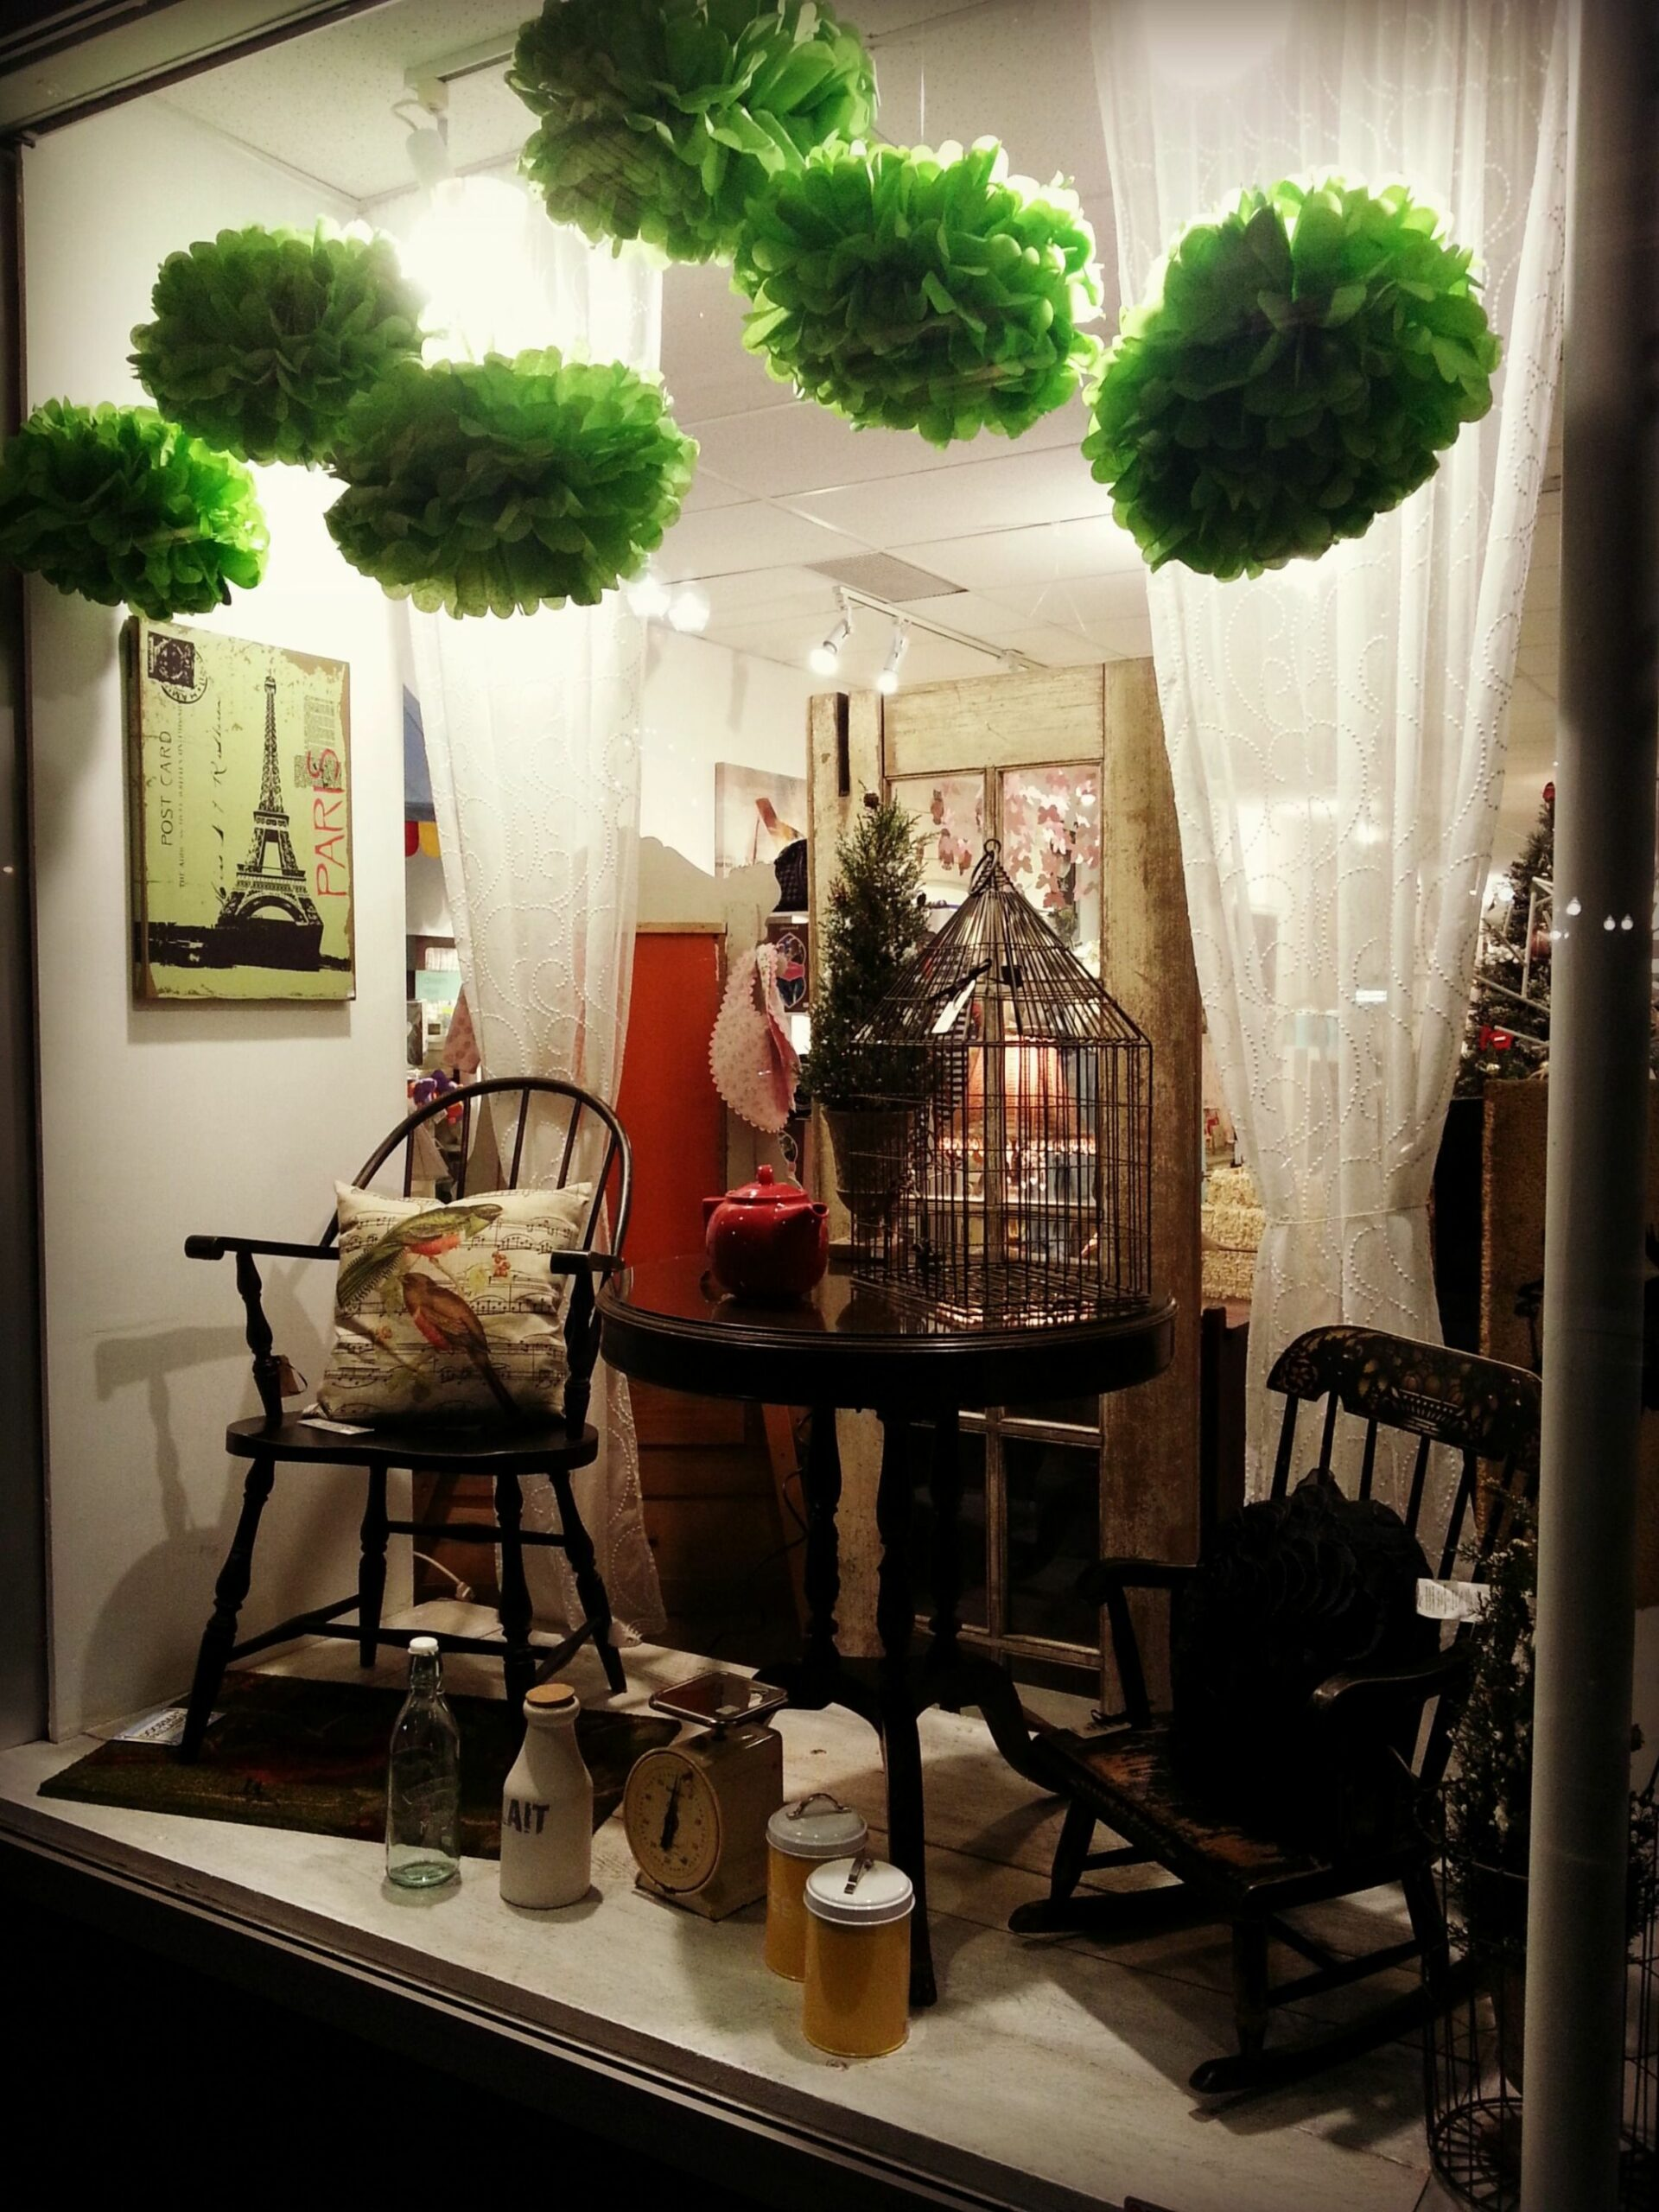 Our January window display! (With images) | Store window displays ...